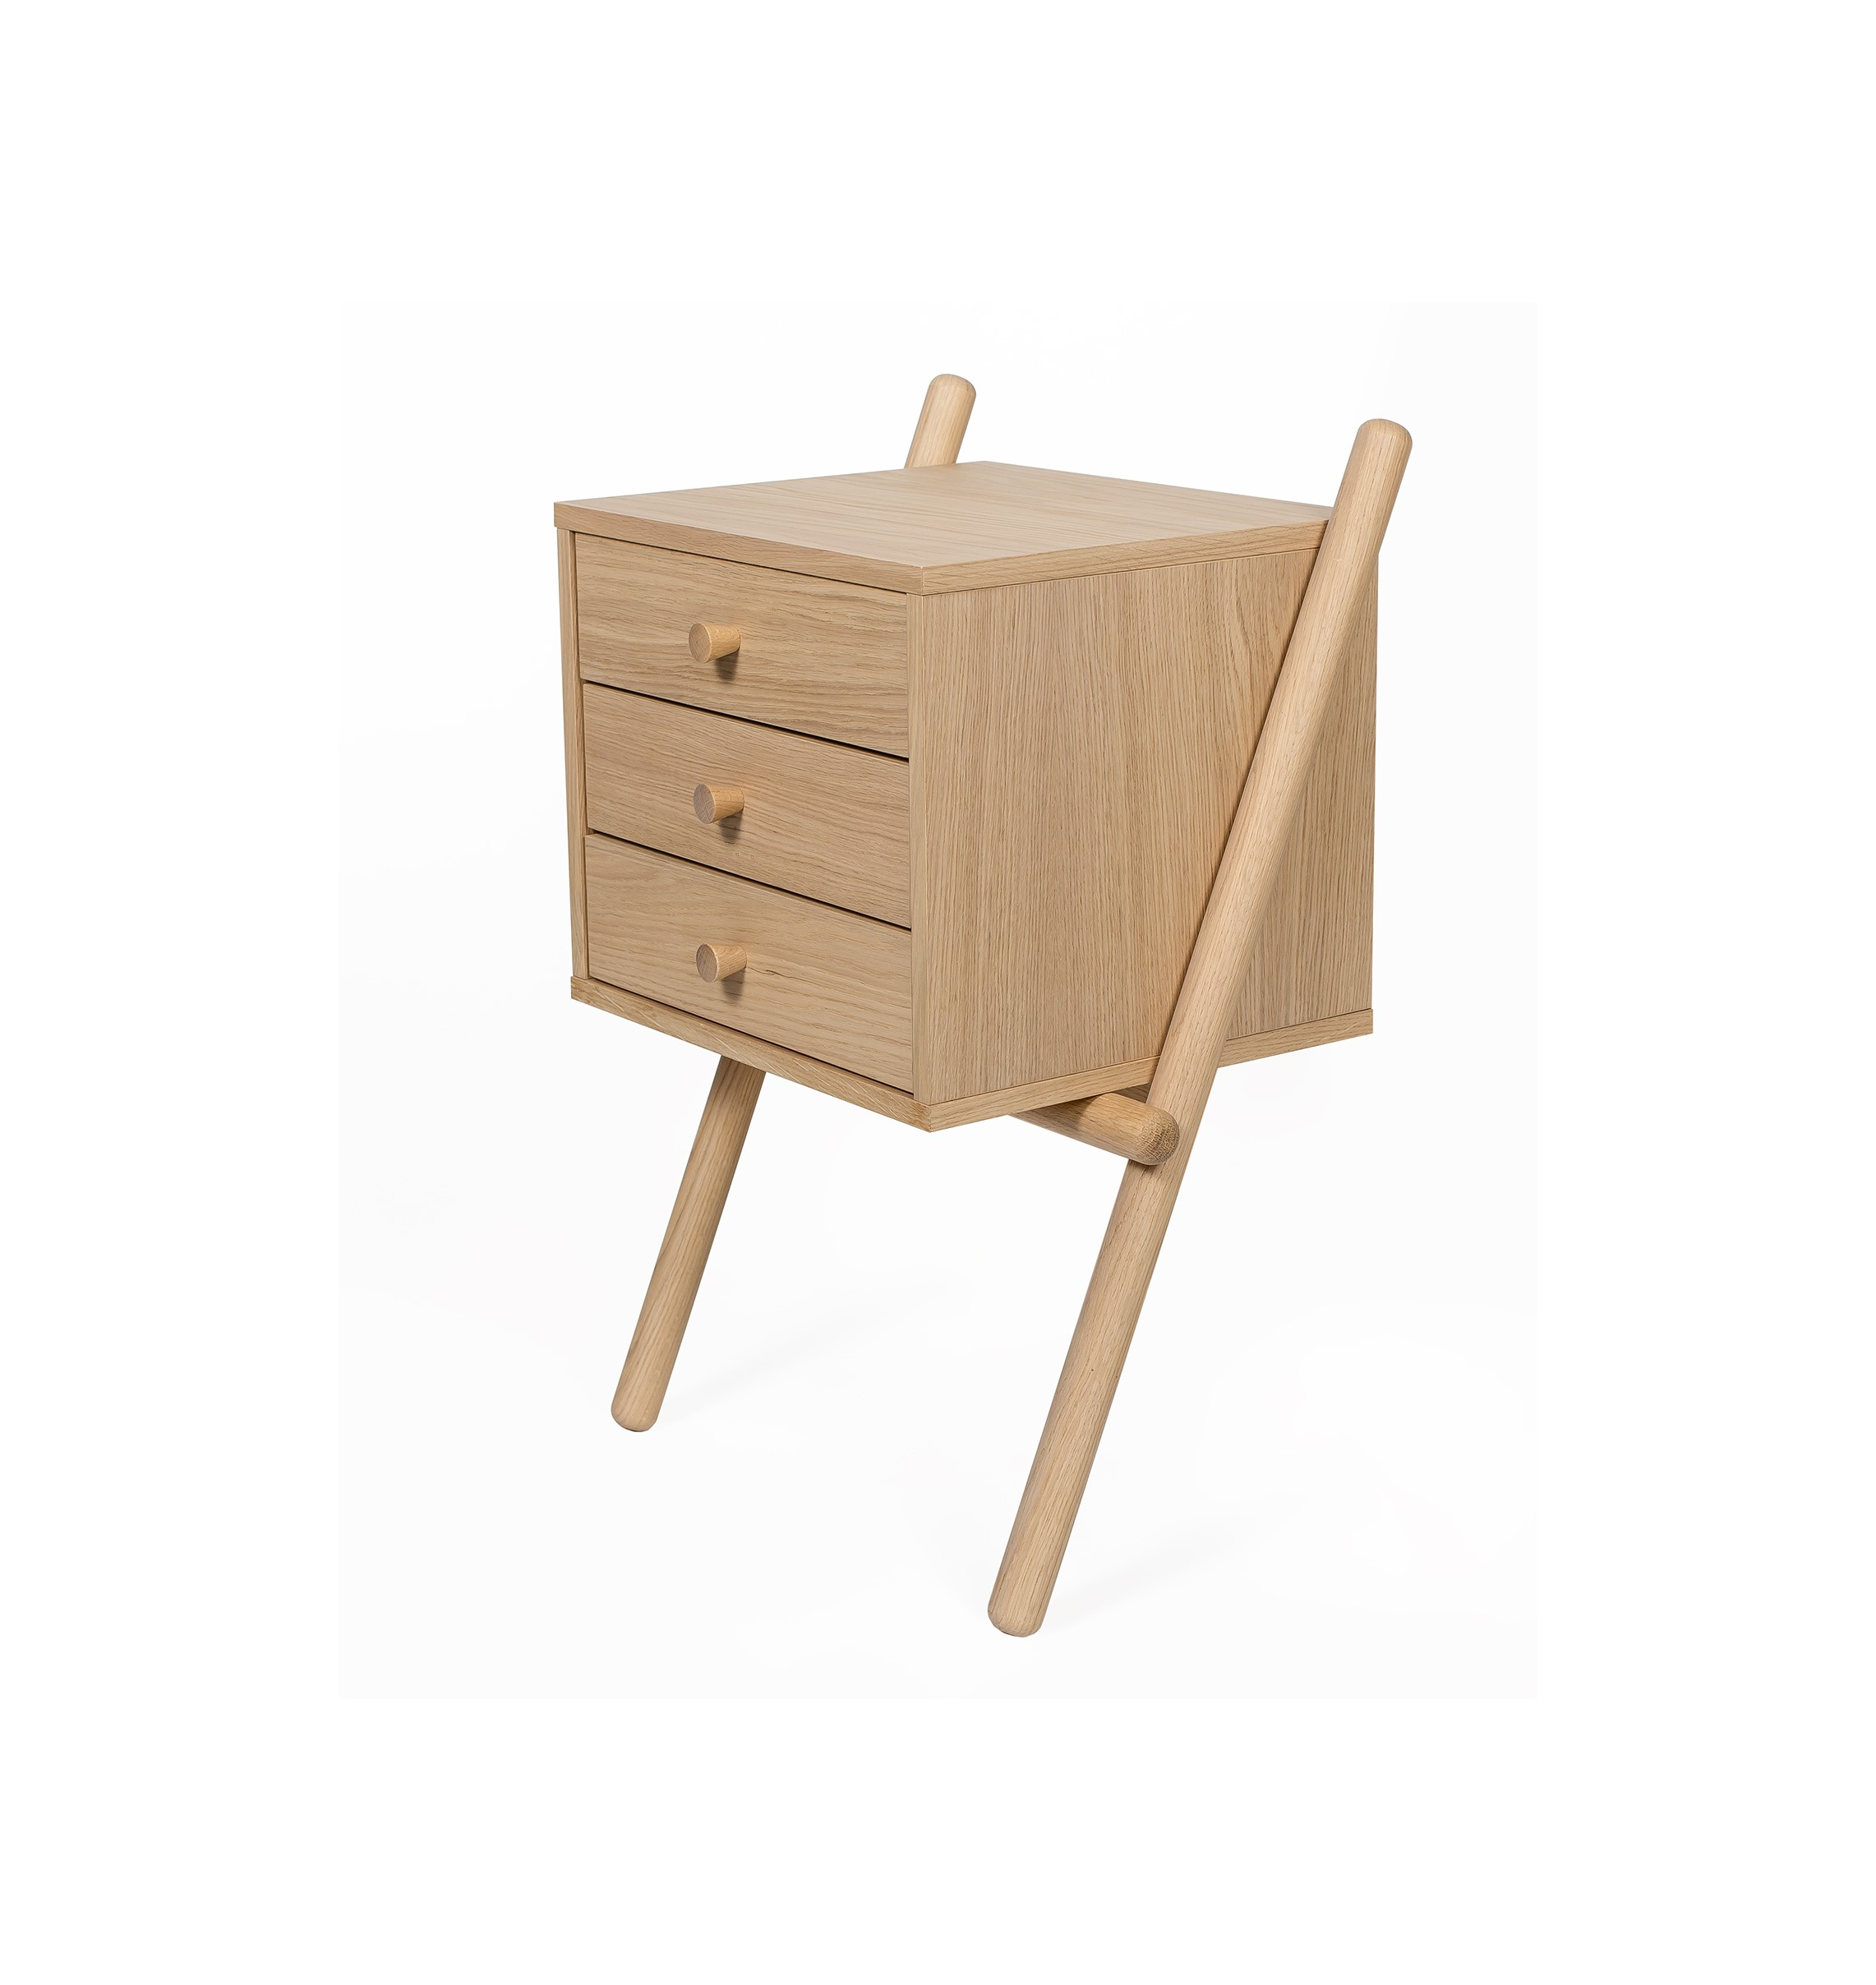 267220101012 Wiru Sidetable 3D Oak 01